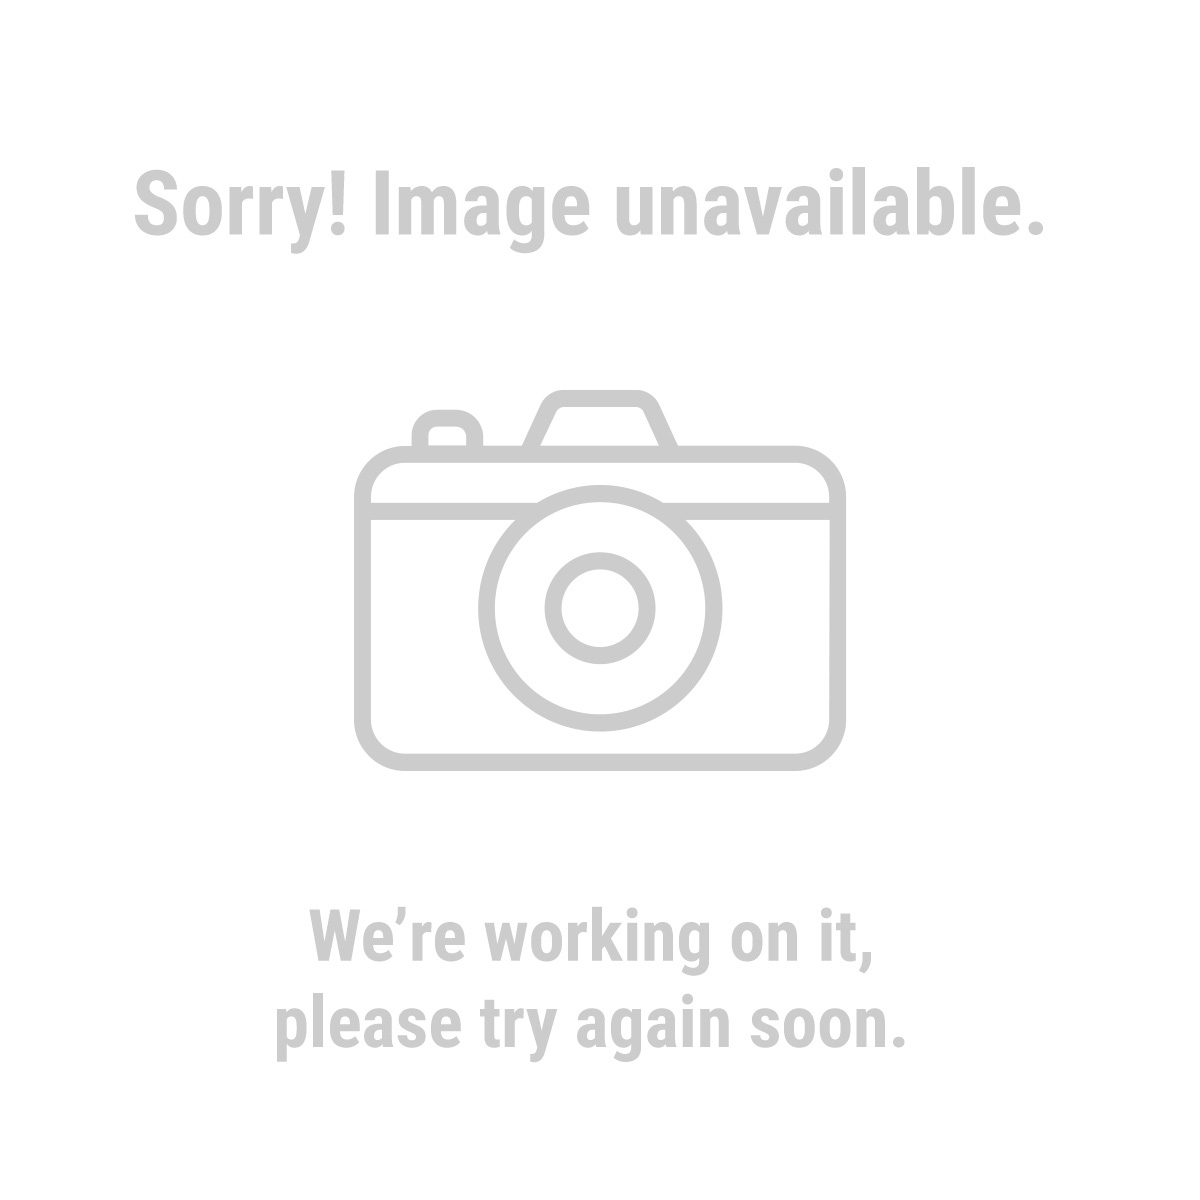 HFT 1437 29 ft. 4'' x 49 ft. Reflective Heavy Duty Silver Tarp